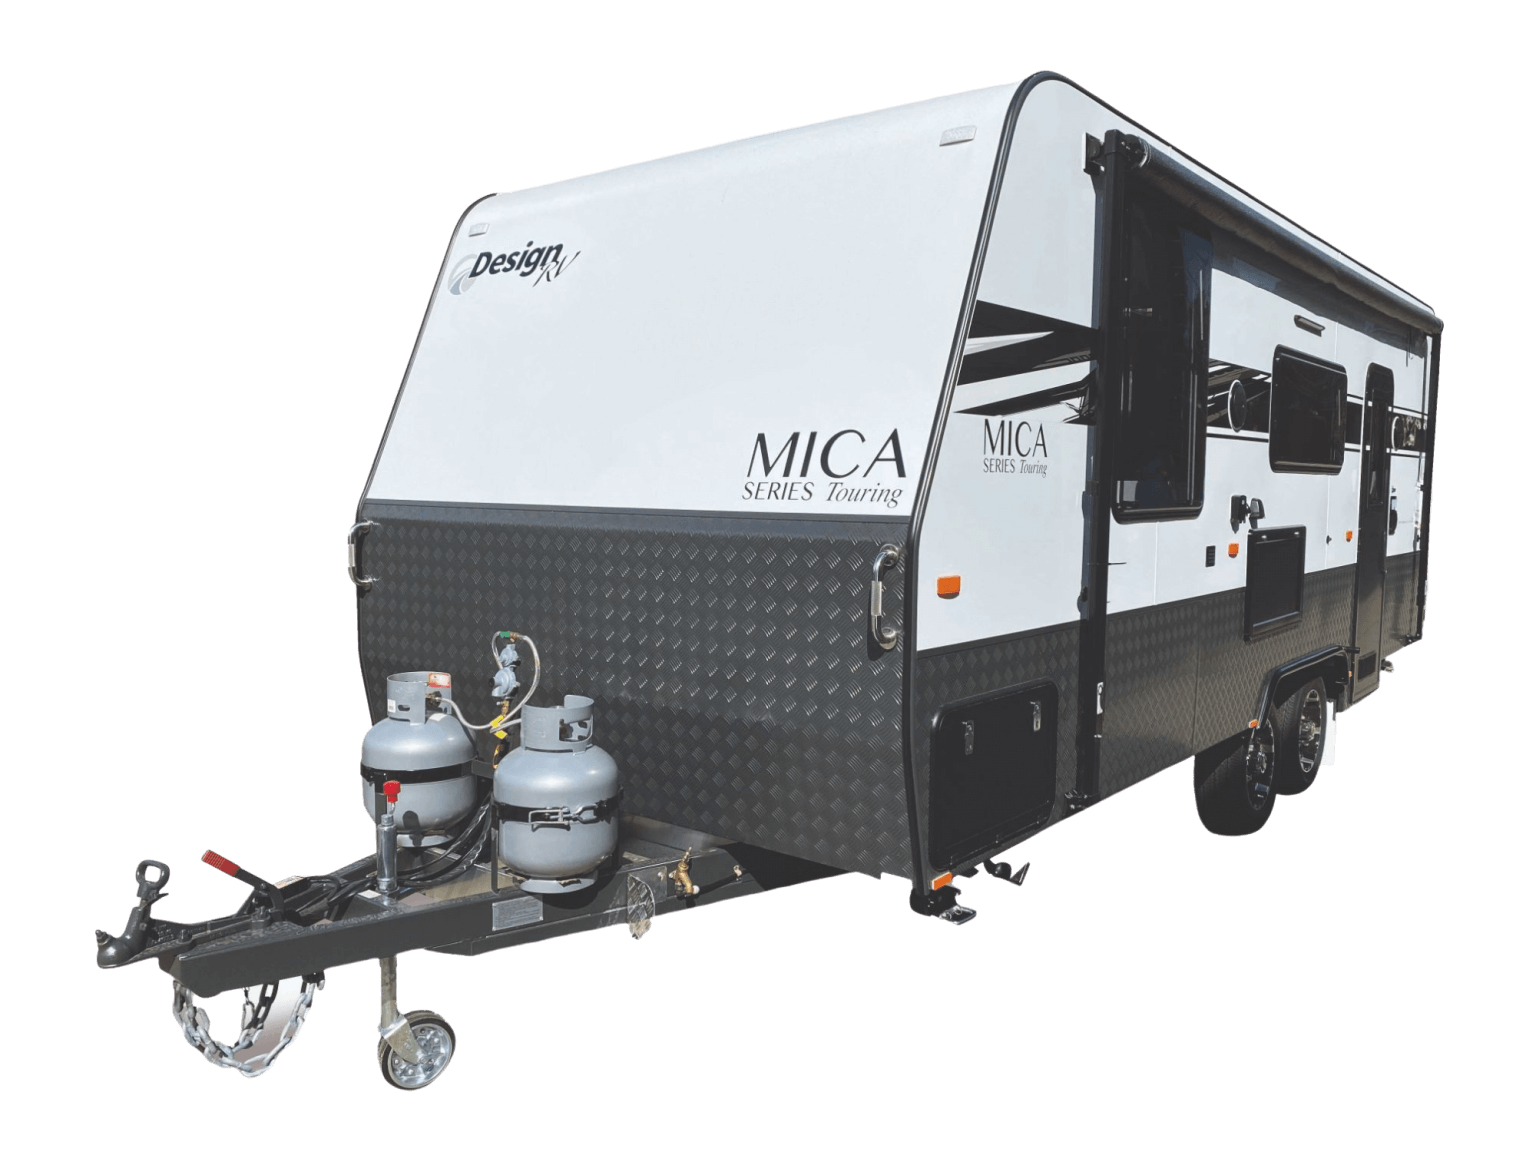 Design RV Mica Caravans No Backgroud